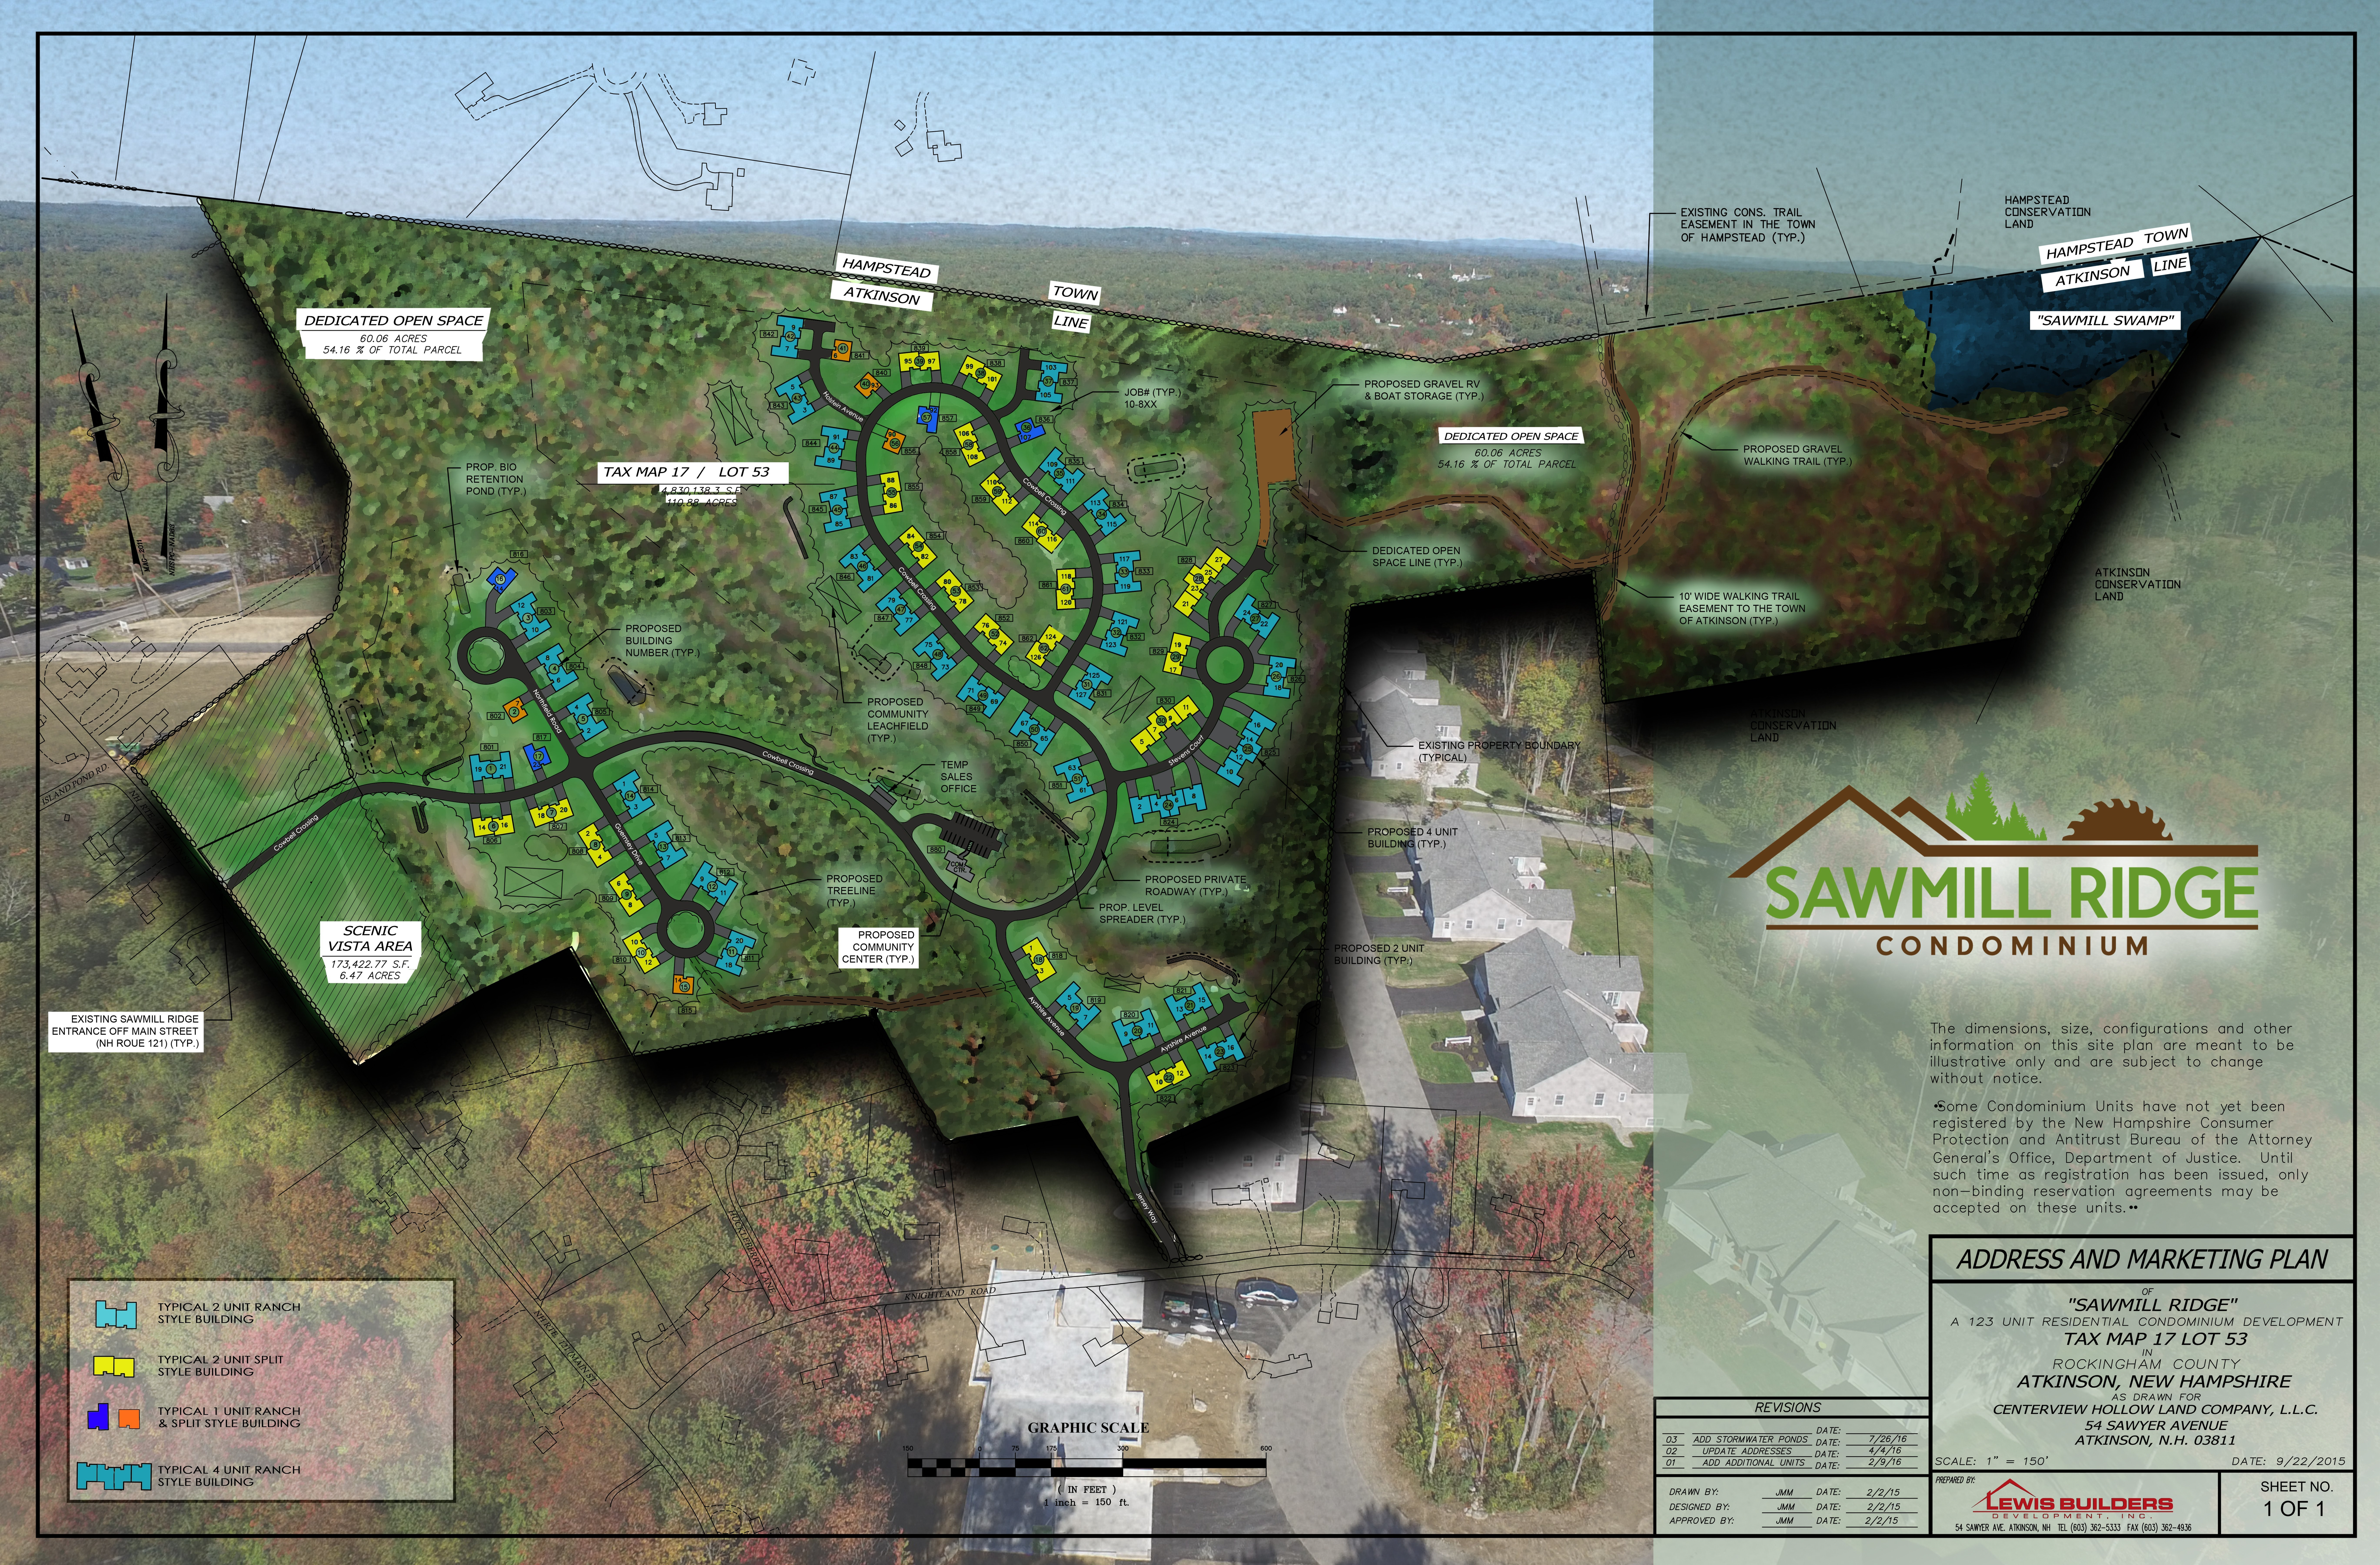 Click to open larger image of Sawmill Ridge Site Plan and zoom in for details